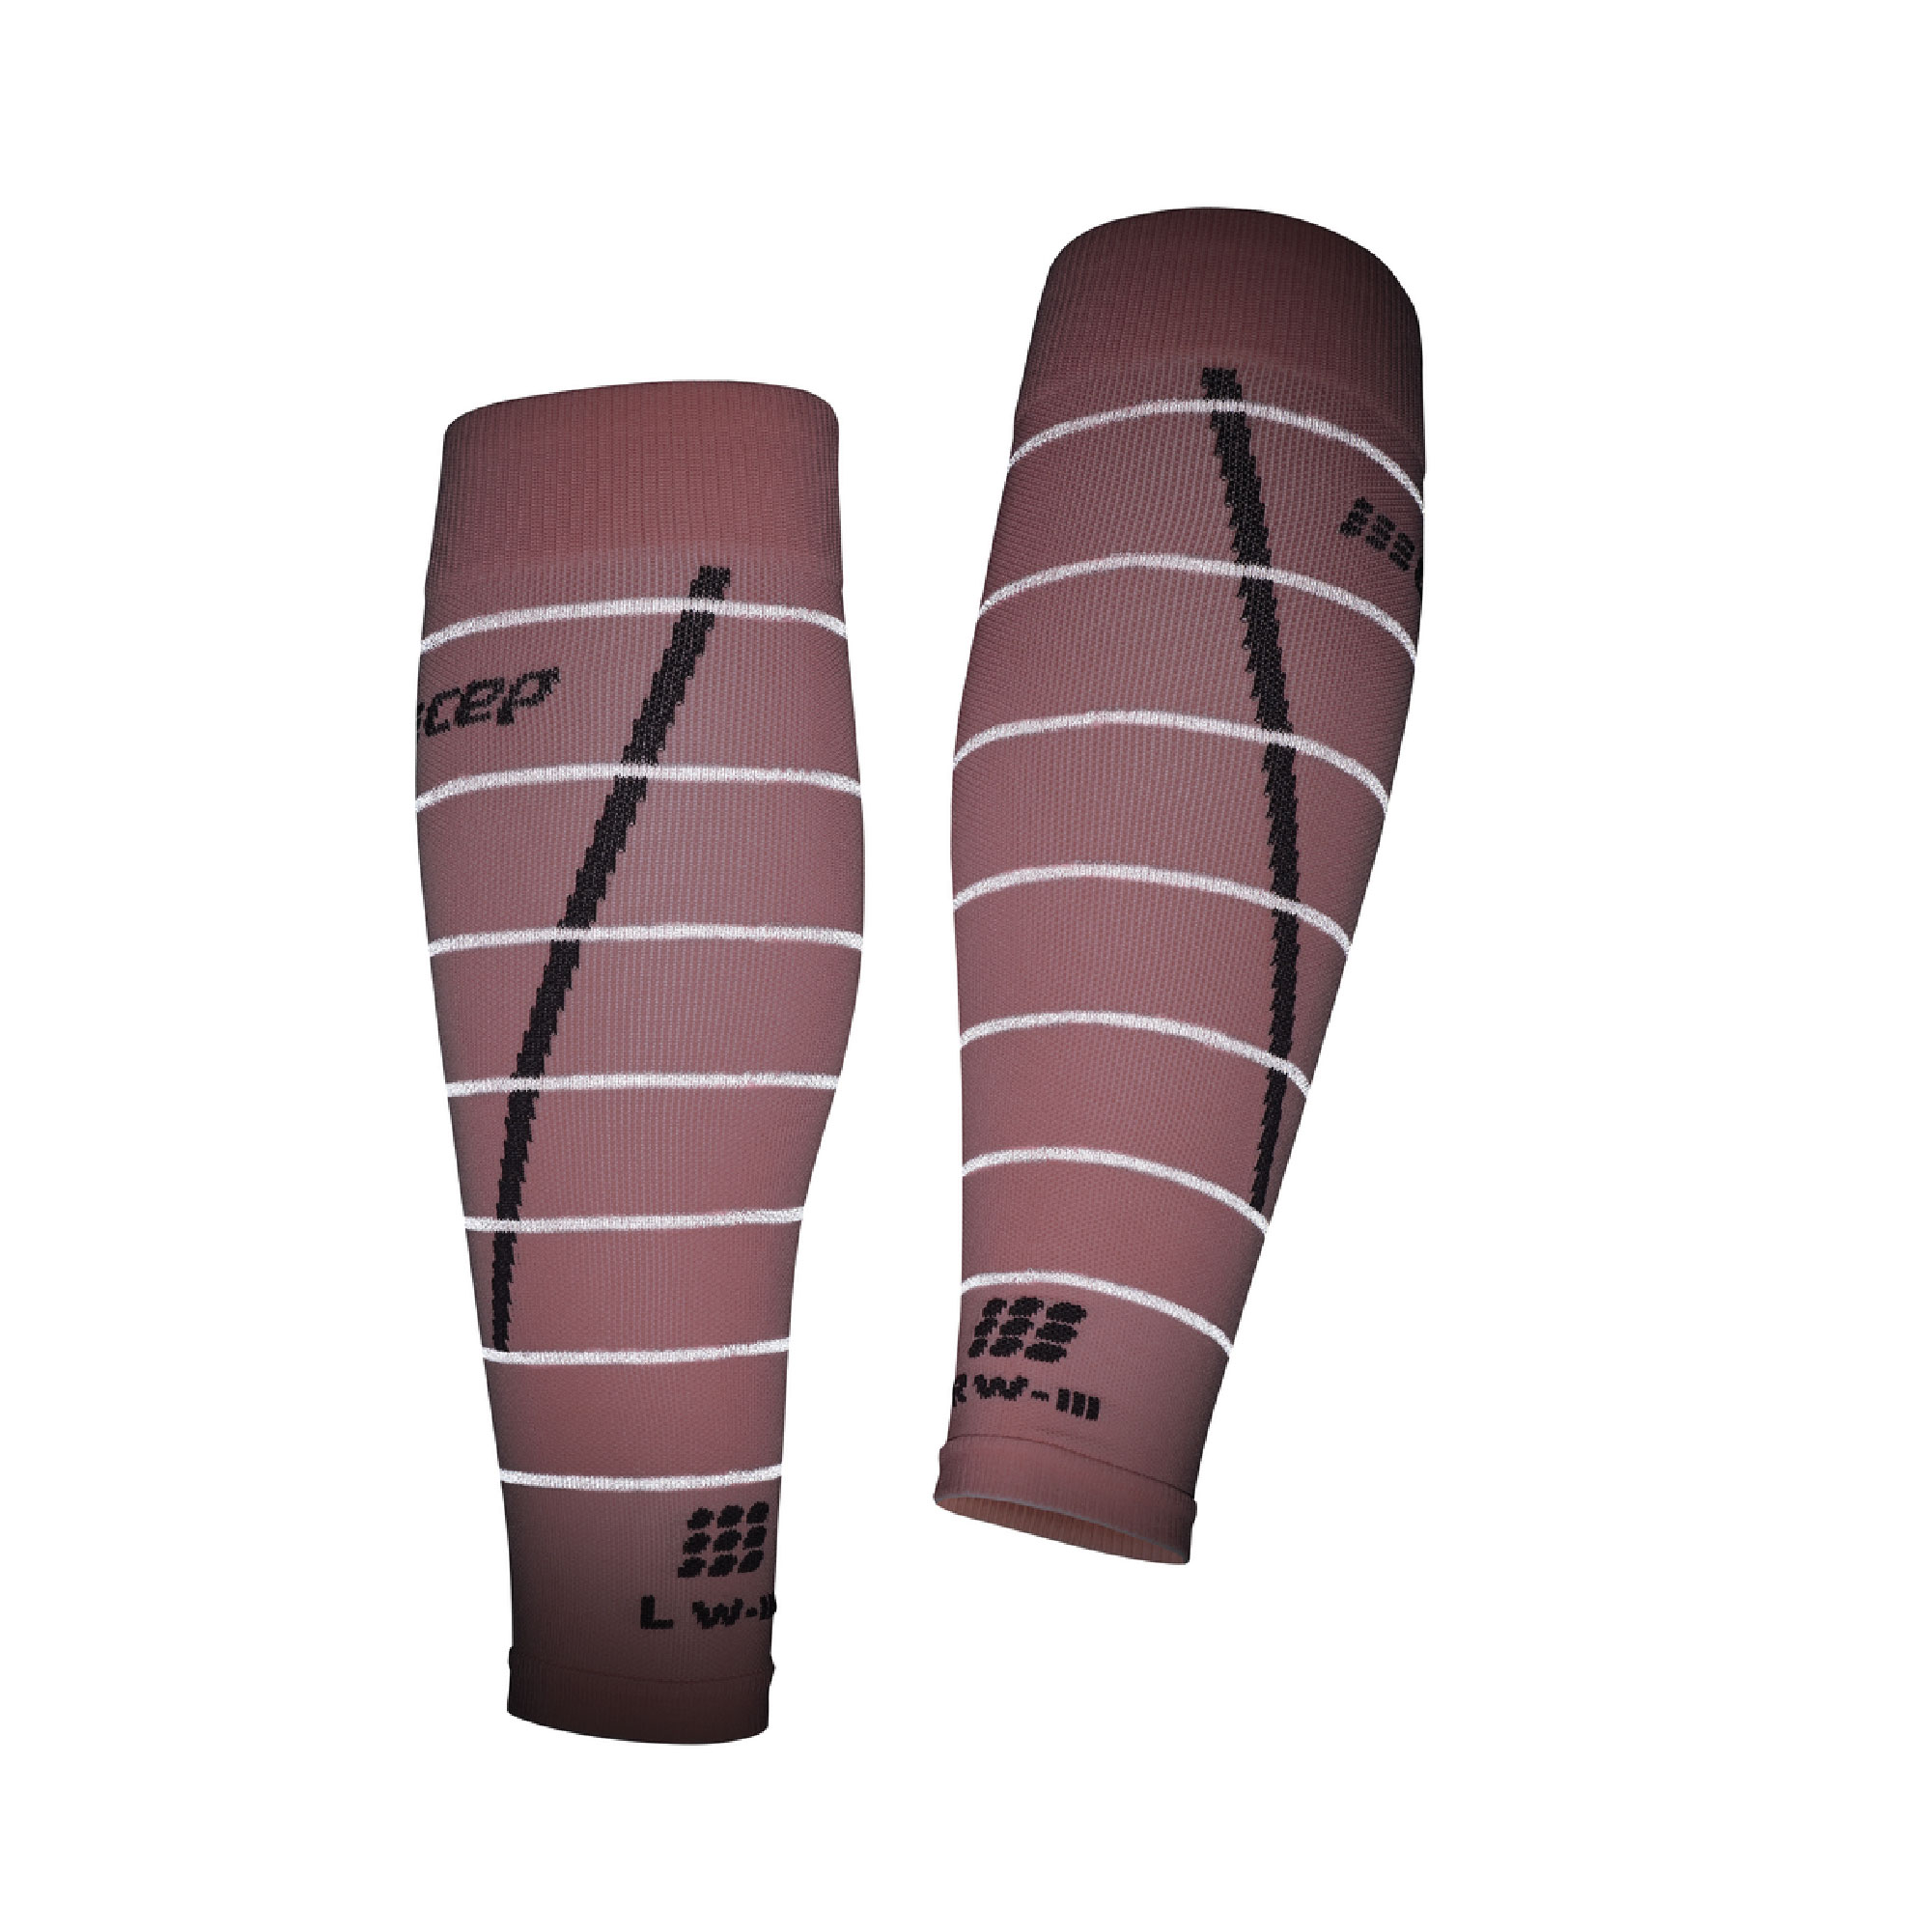 REFLECTIVE CALF SLEEVES | WOMEN